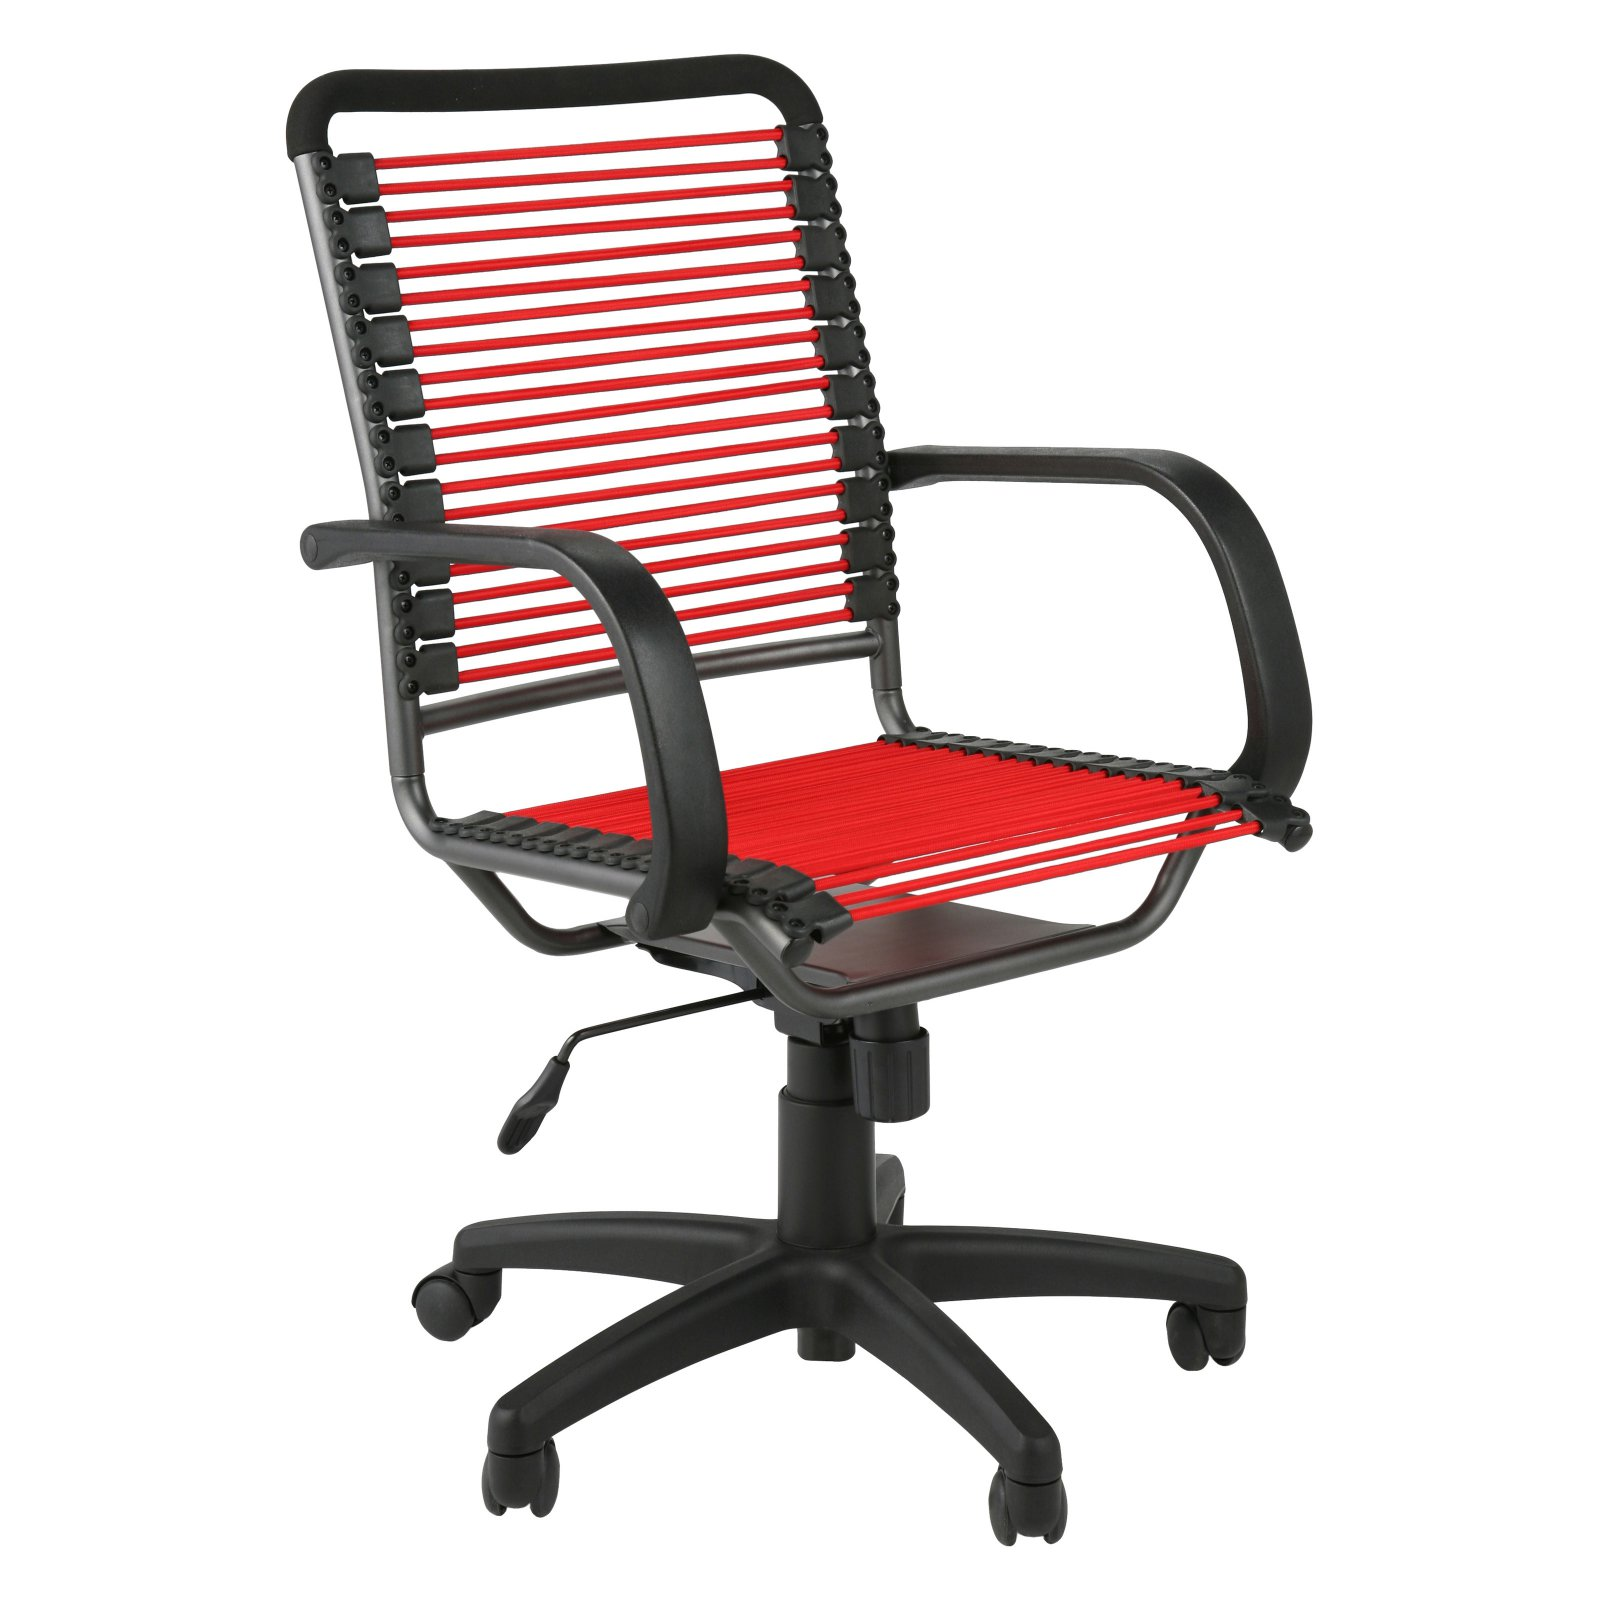 bungie office chair herman miller refurbished chairs euro style high back walmart